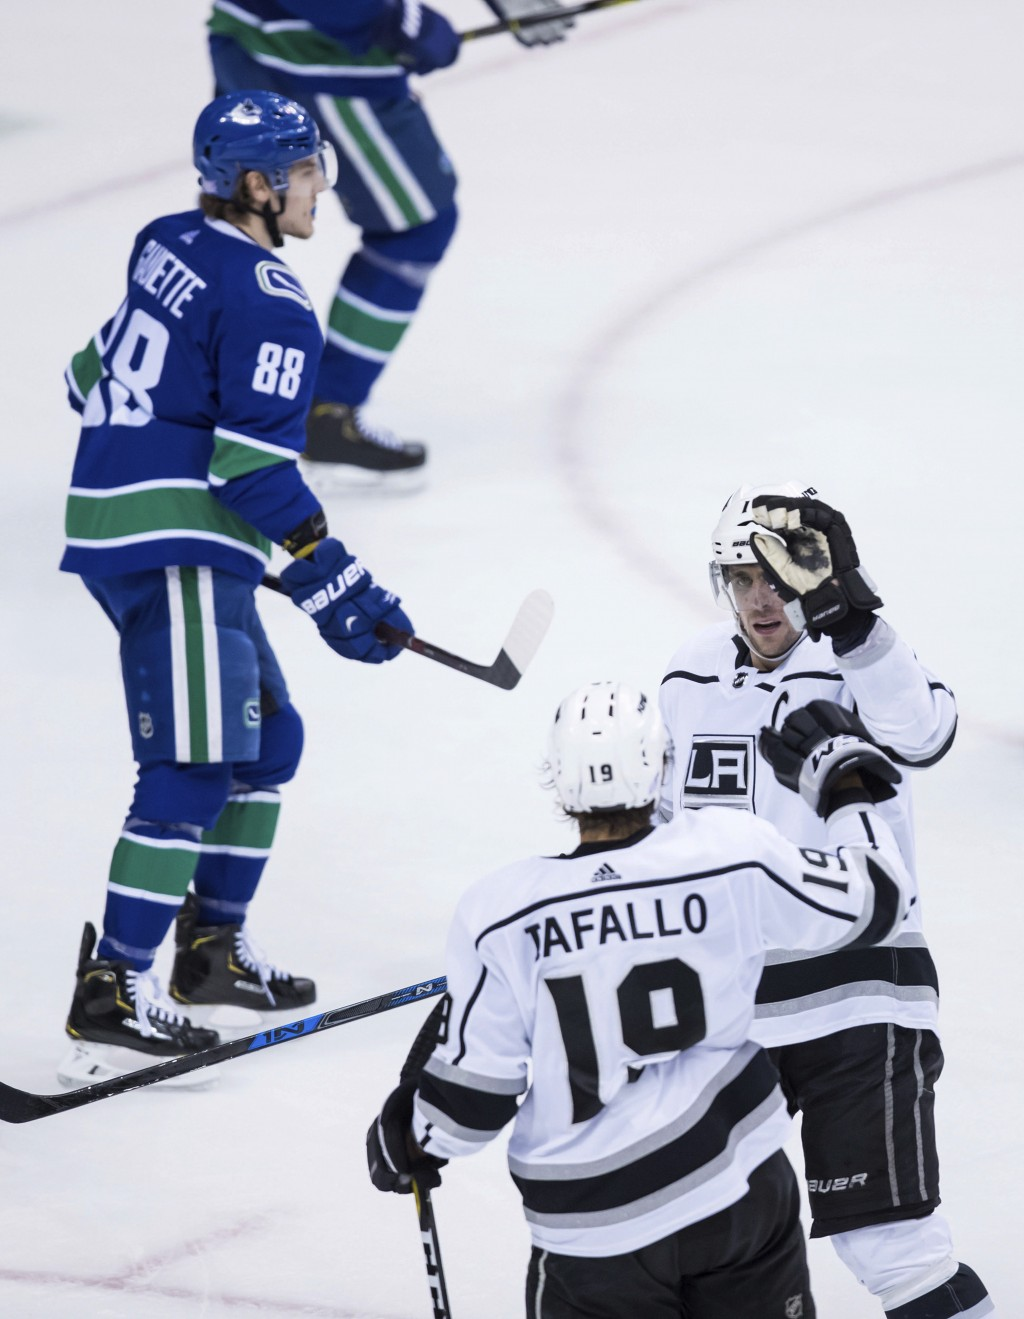 Los Angeles Kings' Anze Kopitar, front right, of Slovenia, and Alex Iafallo (19) celebrate Iafallo's goal as Vancouver Canucks' Adam Gaudette (88) ska...